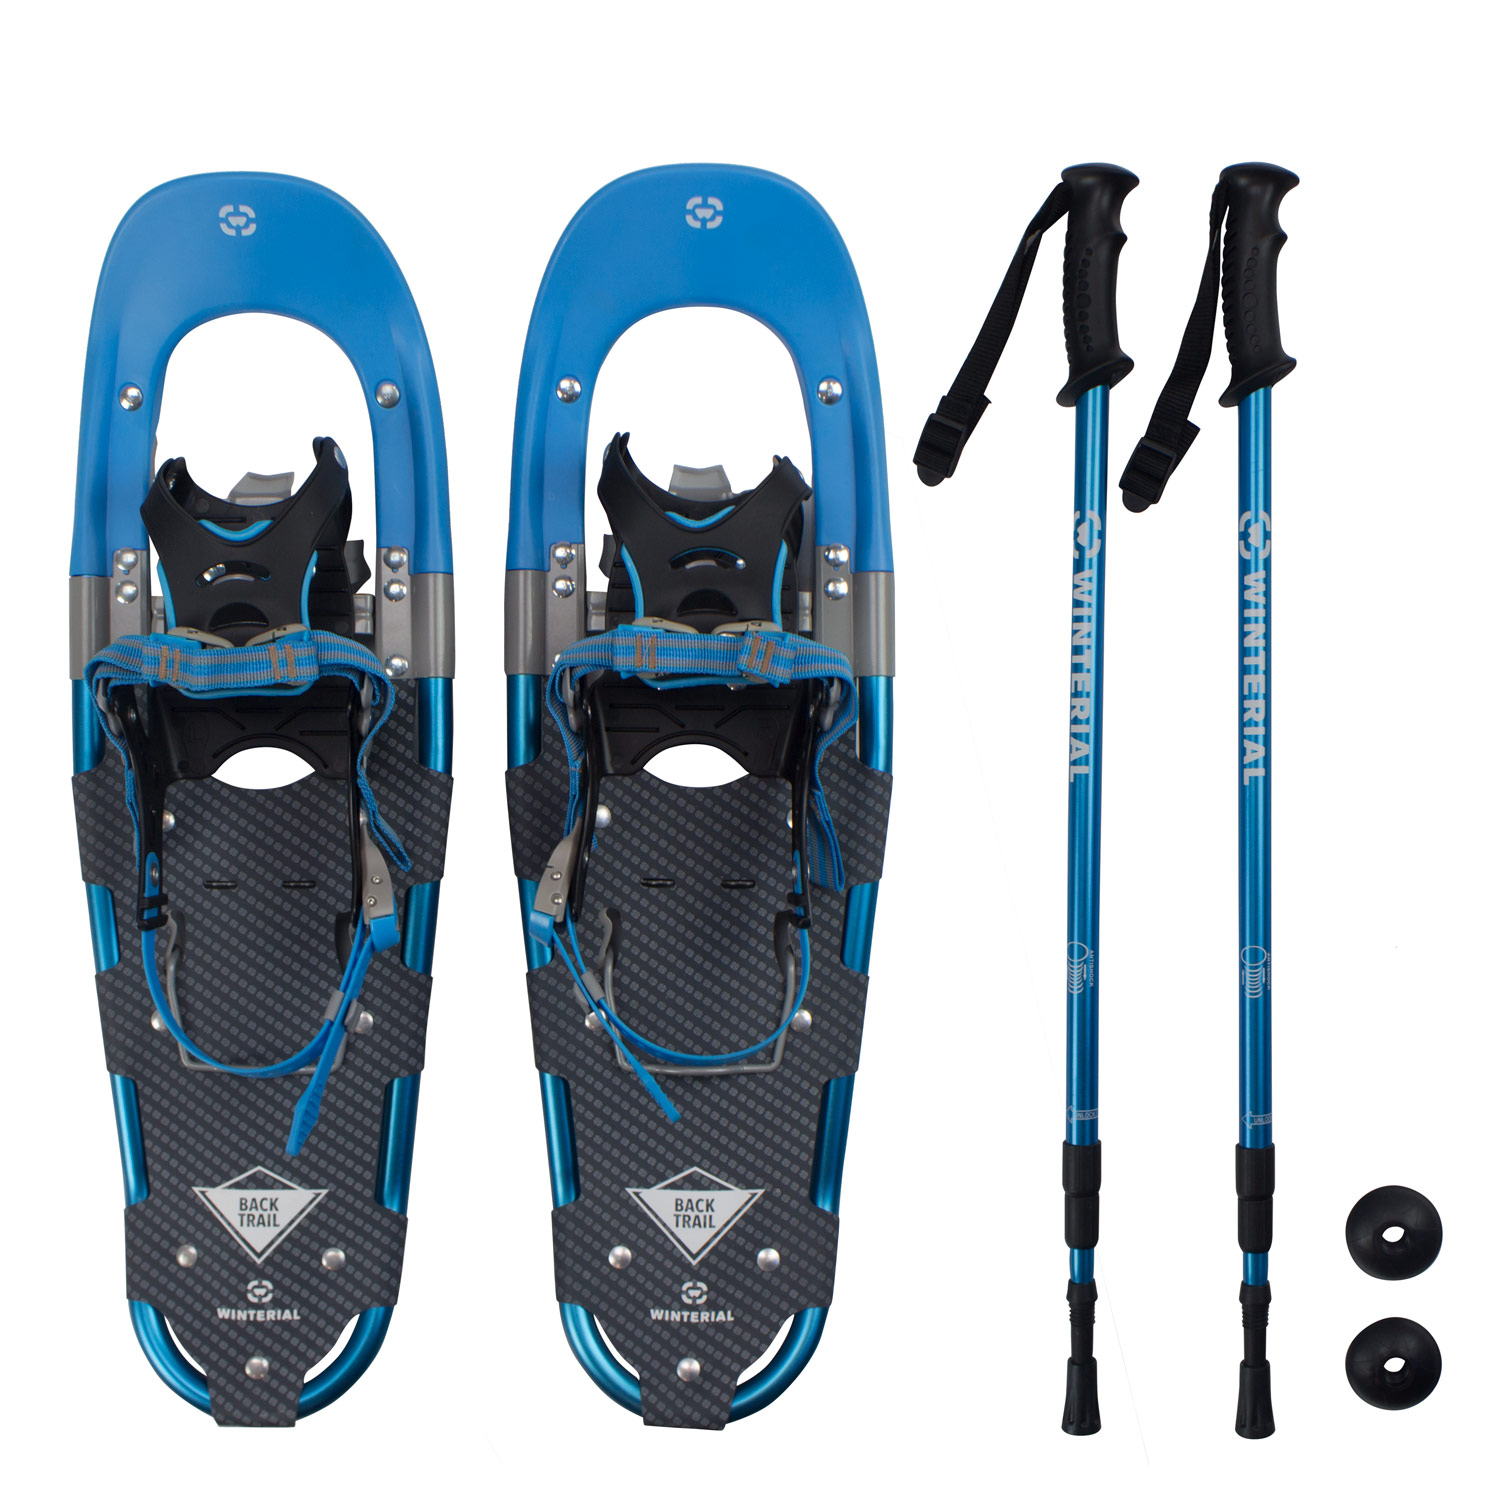 Winterial Back Trail Snowshoes   Recreational Snowshoes   Snowshoeing   Snowshoe   Backcountry Snowshoeing   Rolling... by Winterial